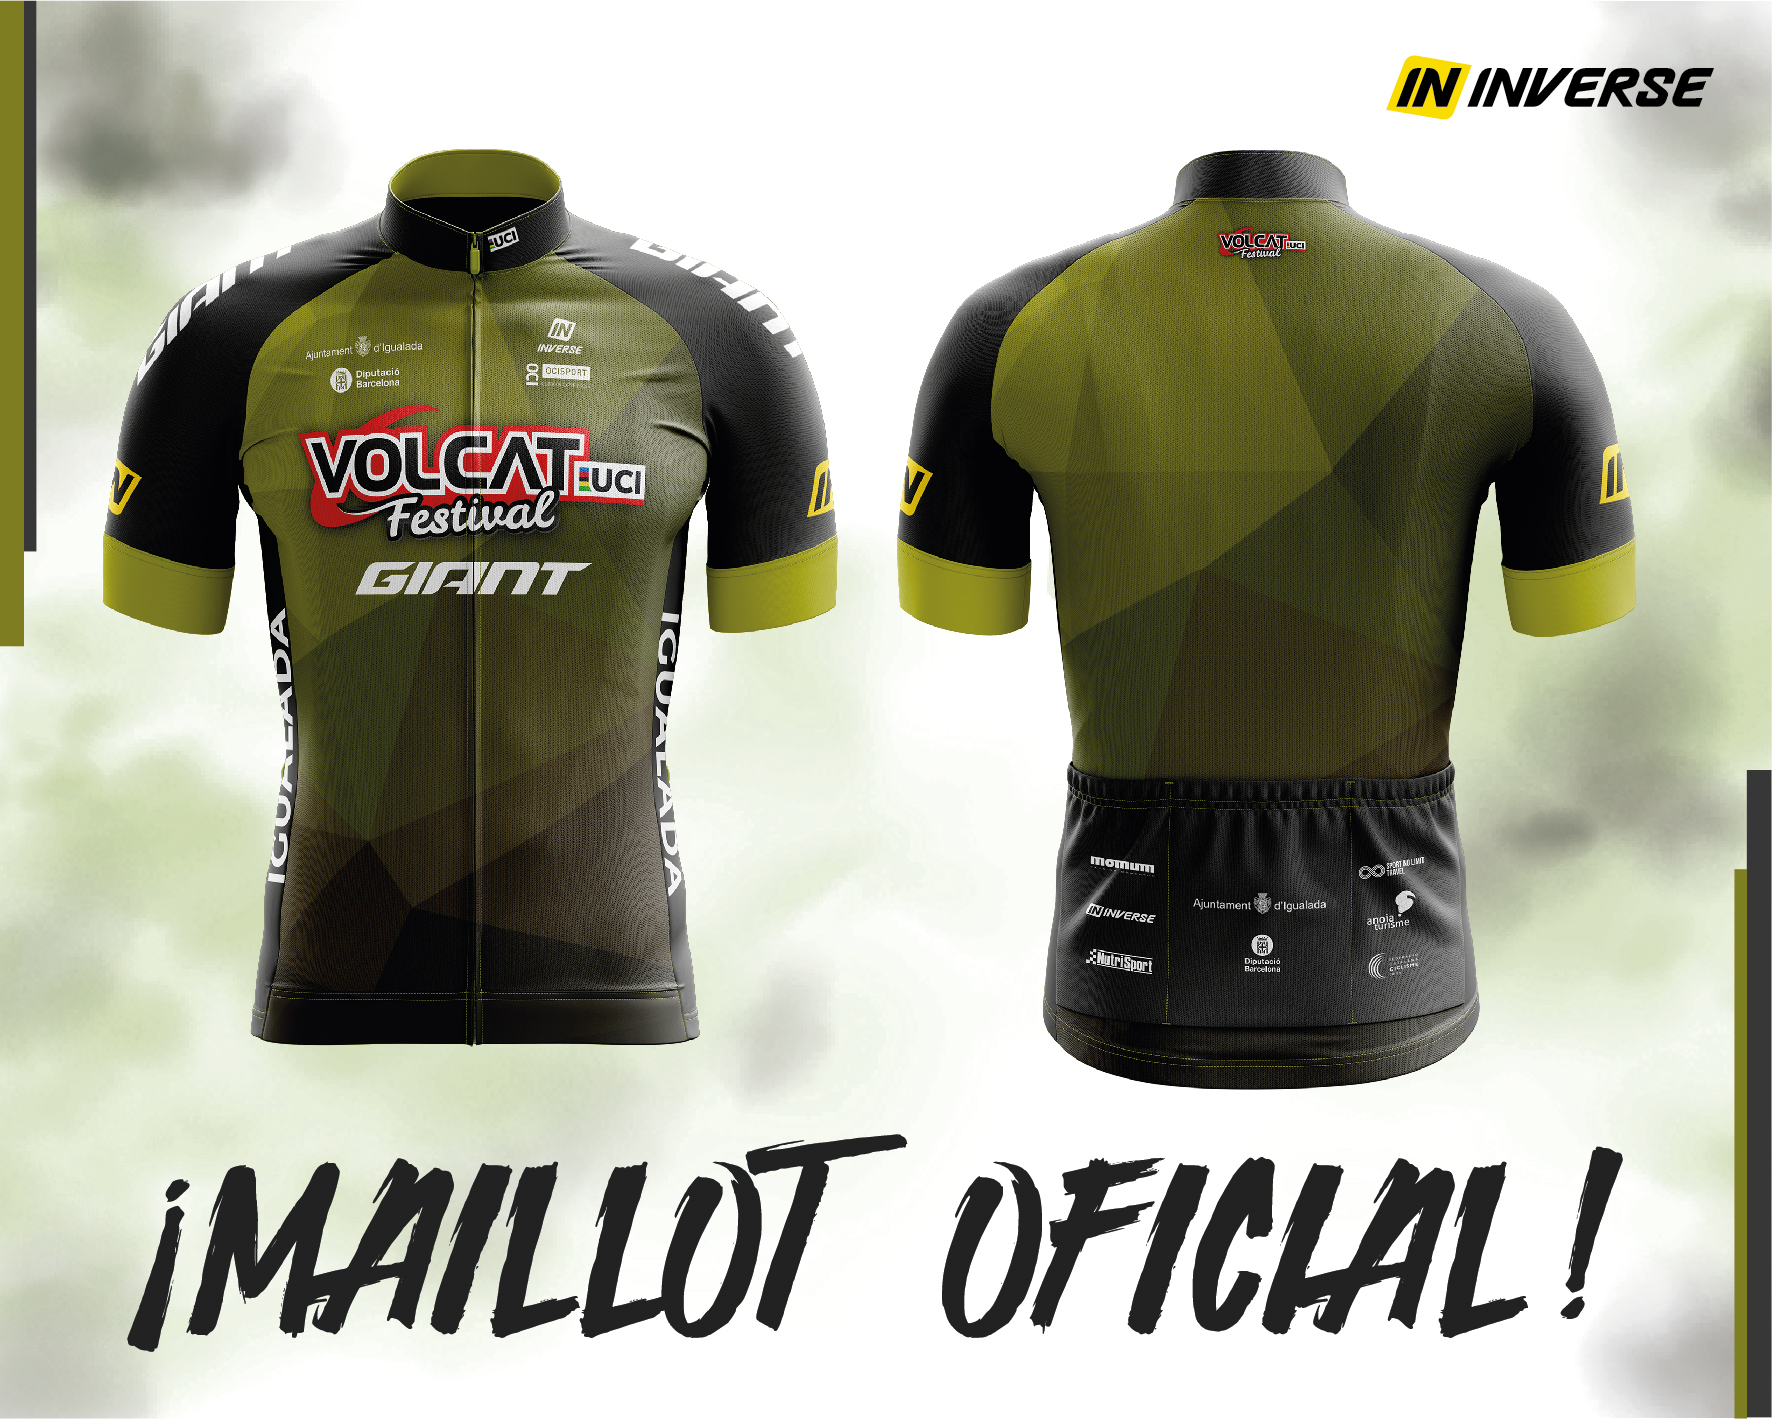 VOLCAT PRESENTS THE JERSEY FOR THE 2020 EDITION MADE BY INVERSE